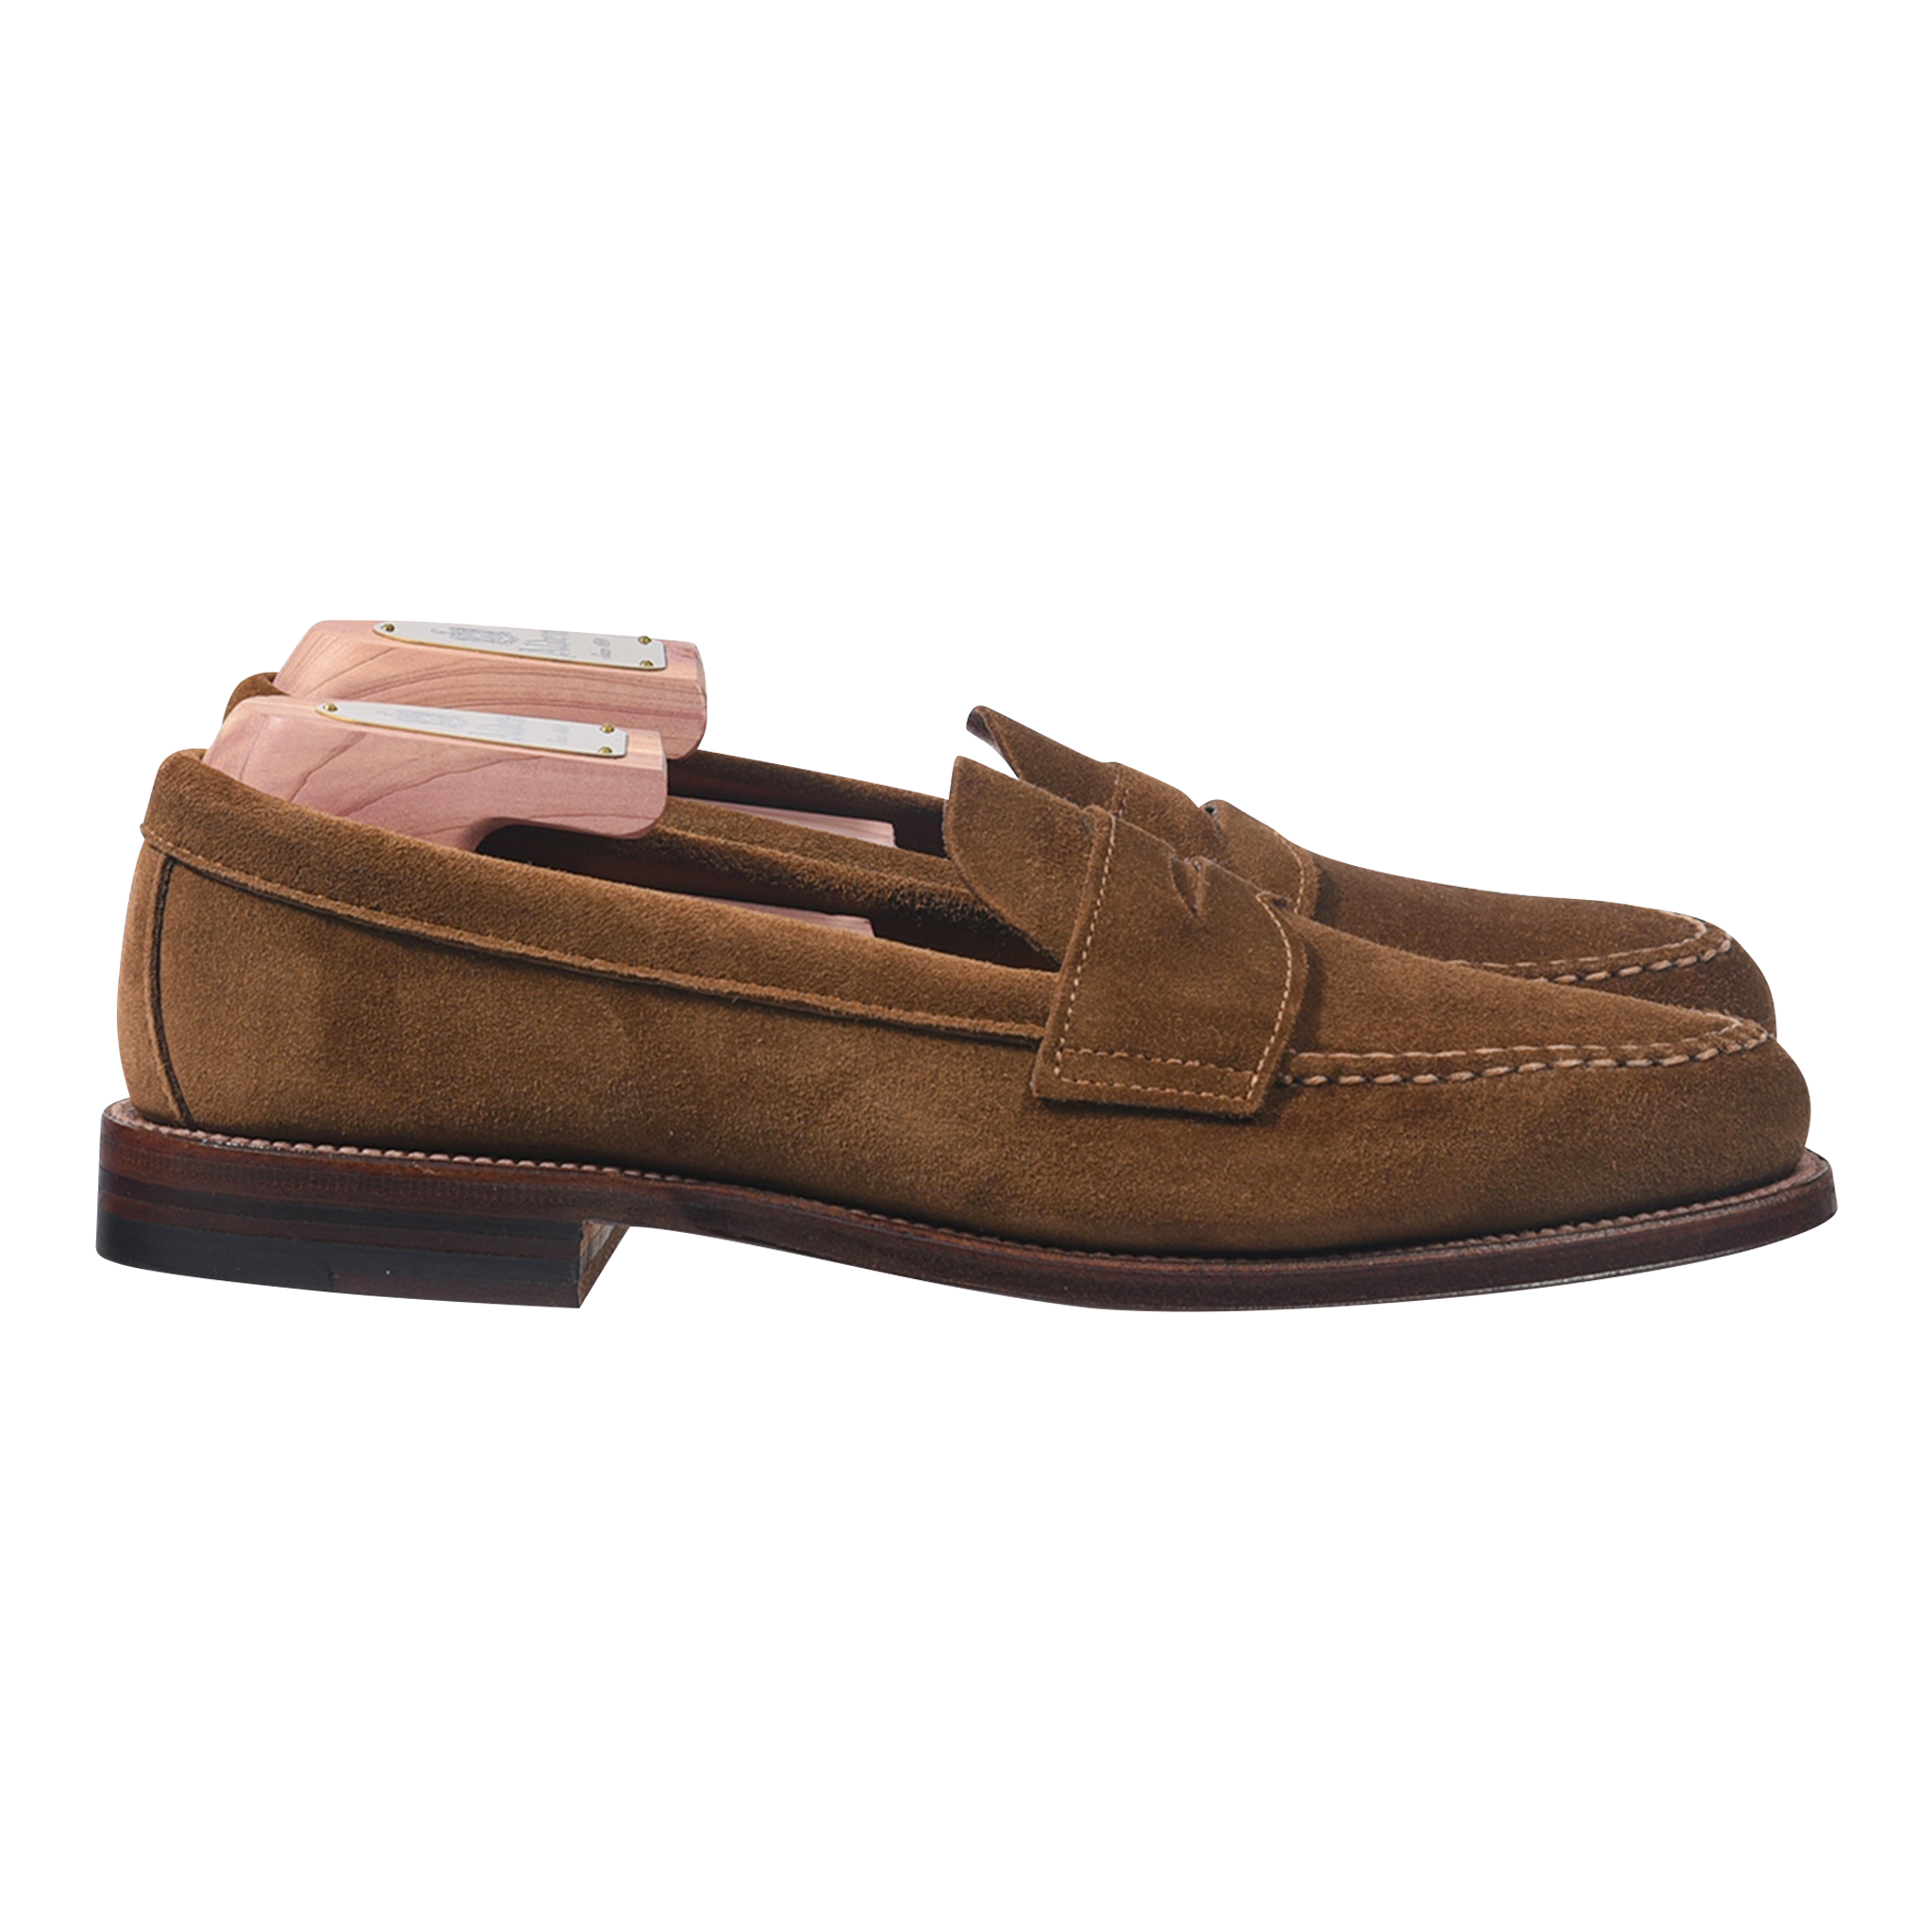 Alden Unlined Penny Loafer in Snuff Suede